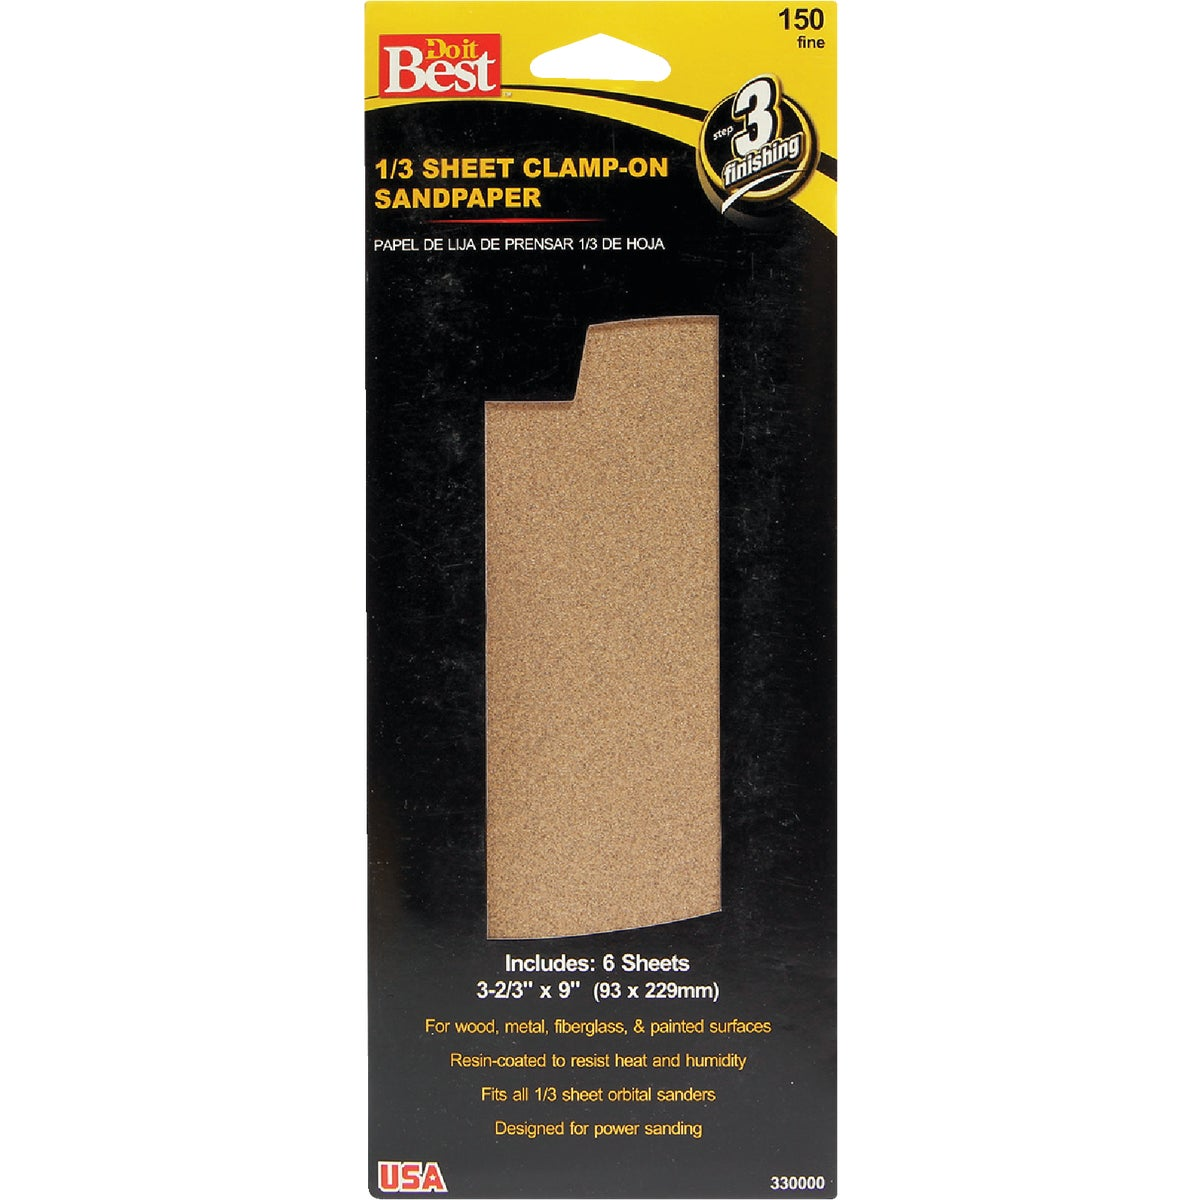 FINE 1/3SHT SANDPAPER - 330000 by Ali Industries Inc